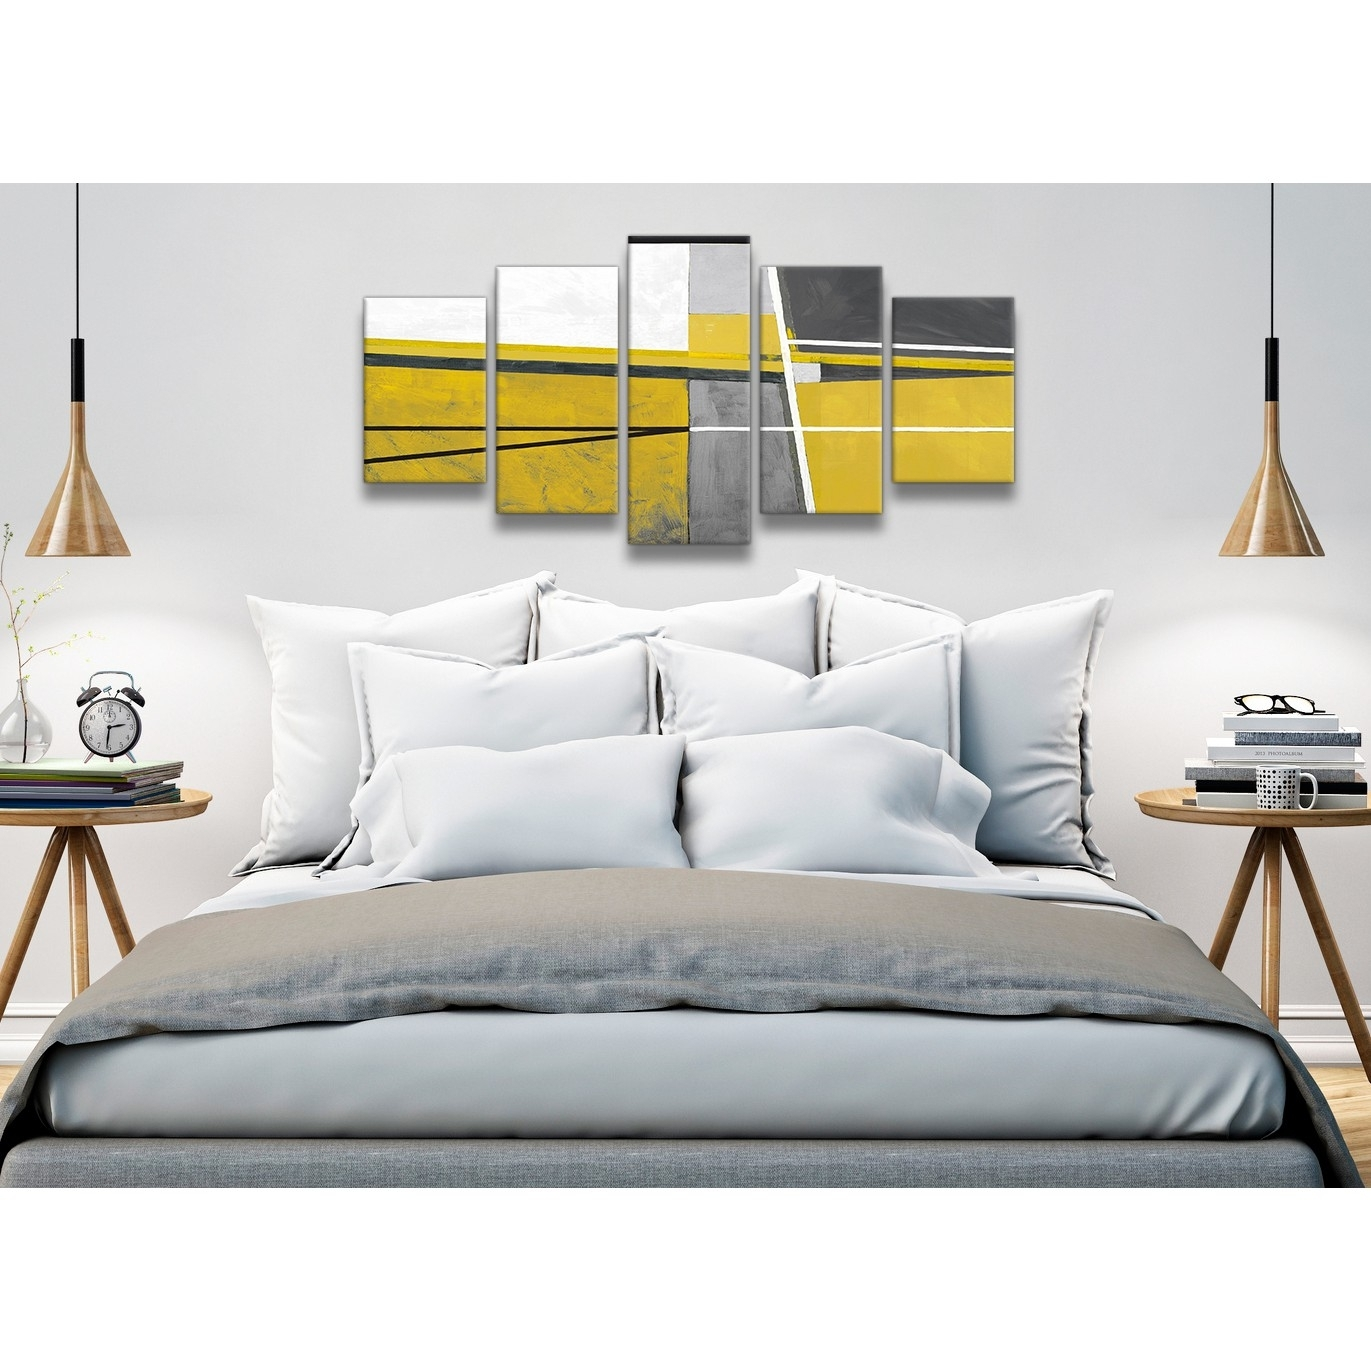 5 Panel Mustard Yellow Grey Painting Abstract Bedroom Canvas for Bedroom Wall Art (Image 3 of 20)